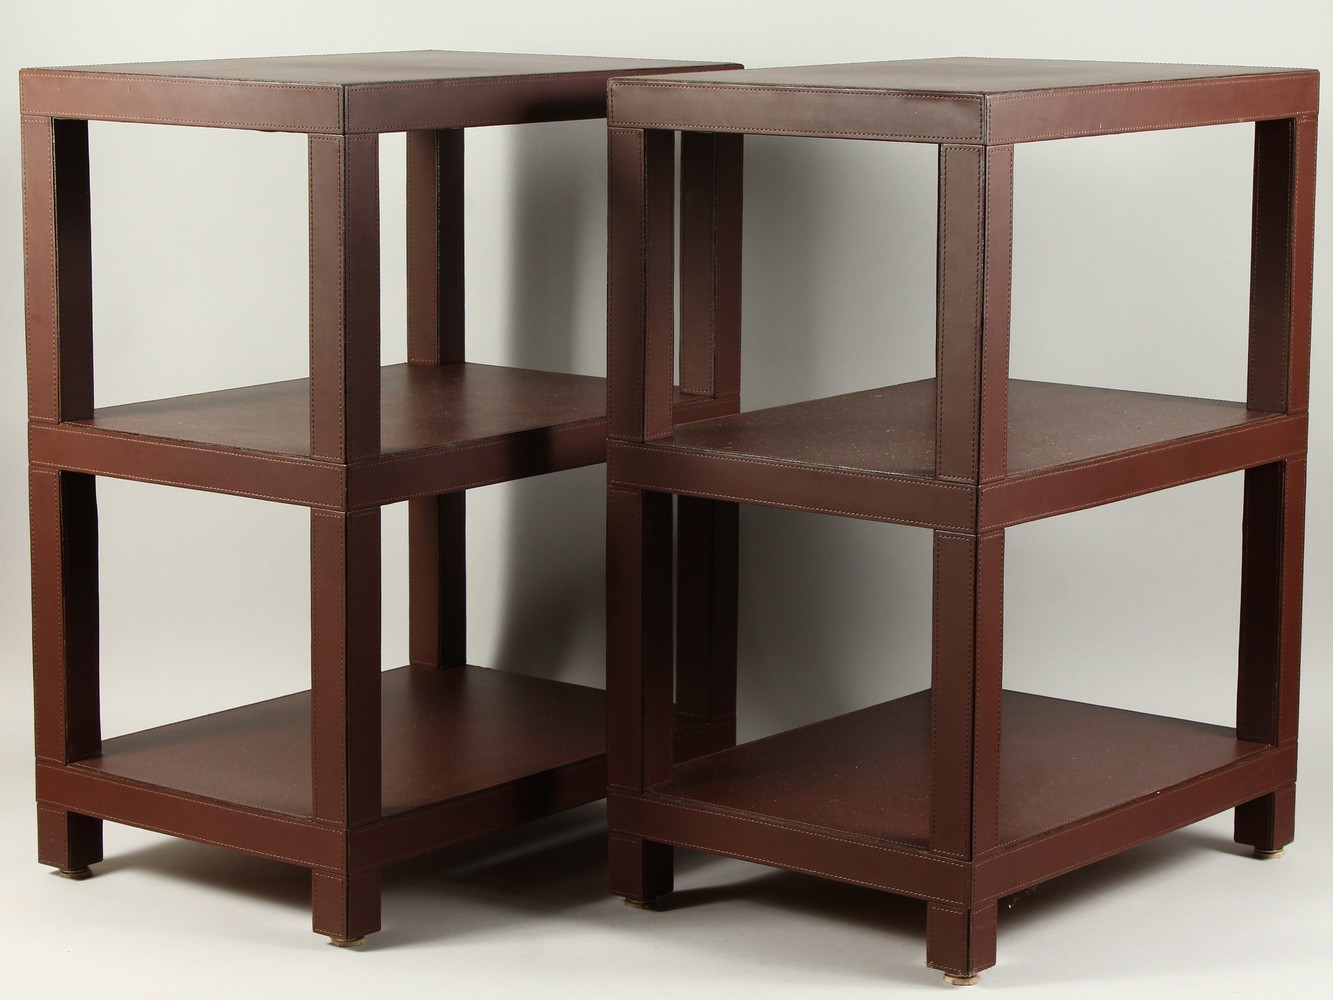 DOMINIC CHAMBON, A GOOD PAIR OF LEATHER COVERED THREE TIER OCCASIONAL TABLES. 48cms wide x 34cms - Image 2 of 6